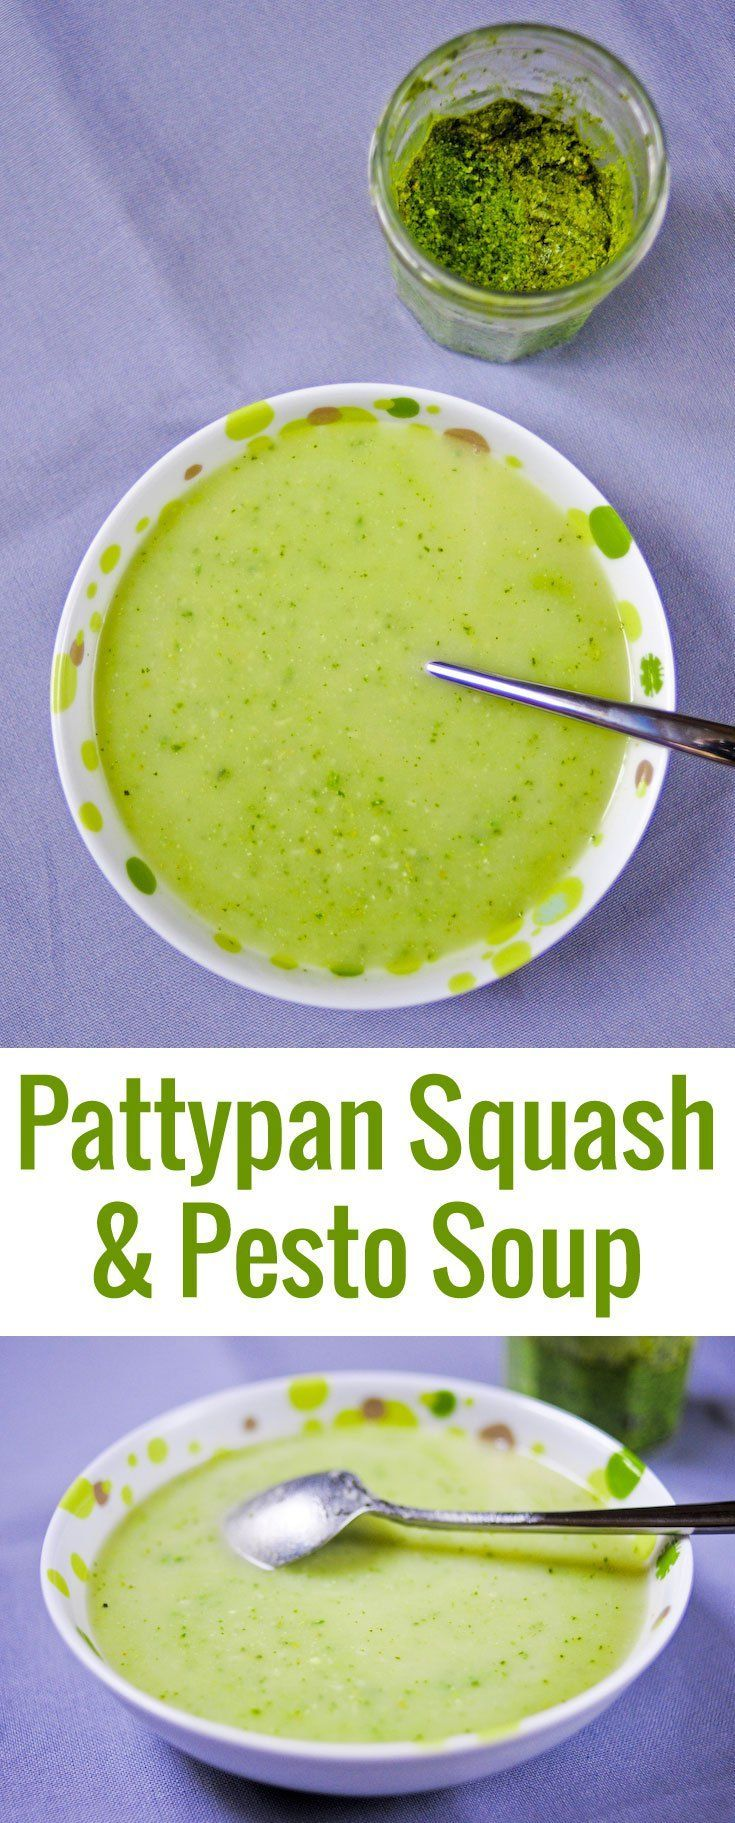 The flavors of this simple pattypan squash soup is elevated by a swirl of pesto. Fragrant and satisfying for a weeknight dinner.